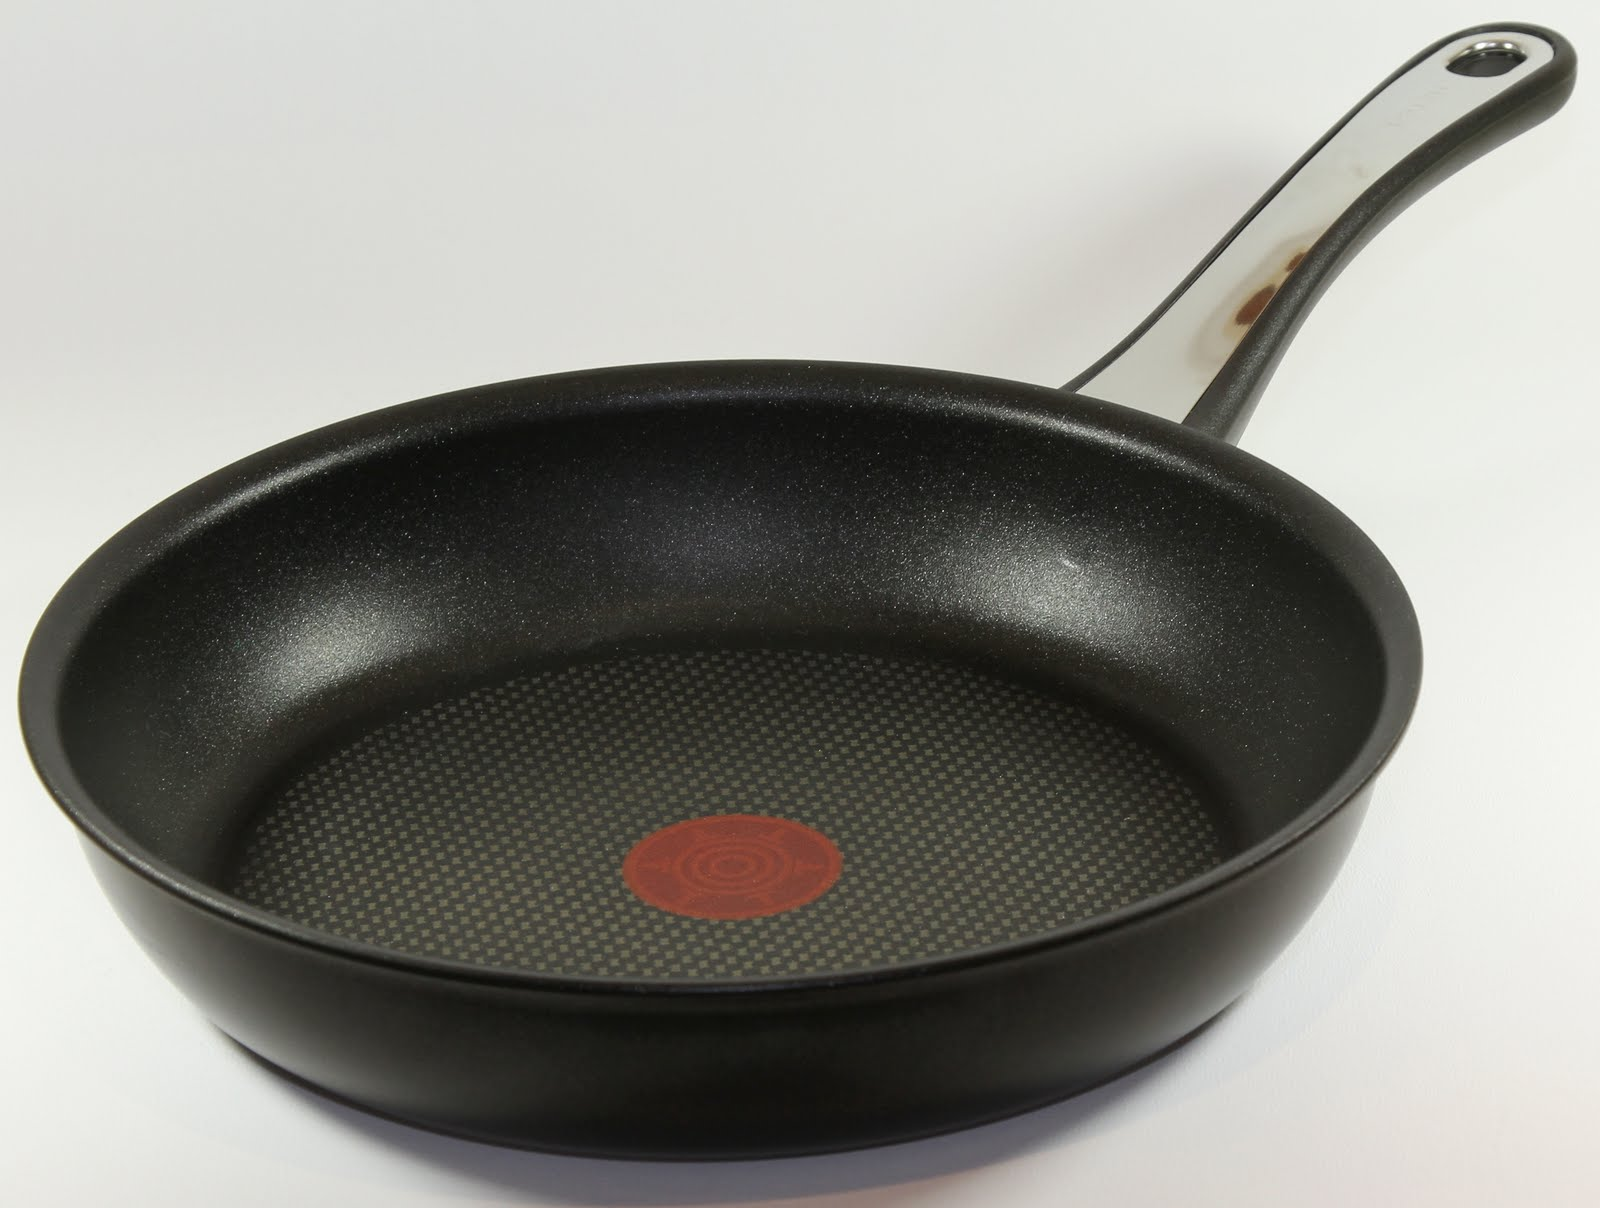 Cooking Frying Pans 26cm Pan Has Glass Lid